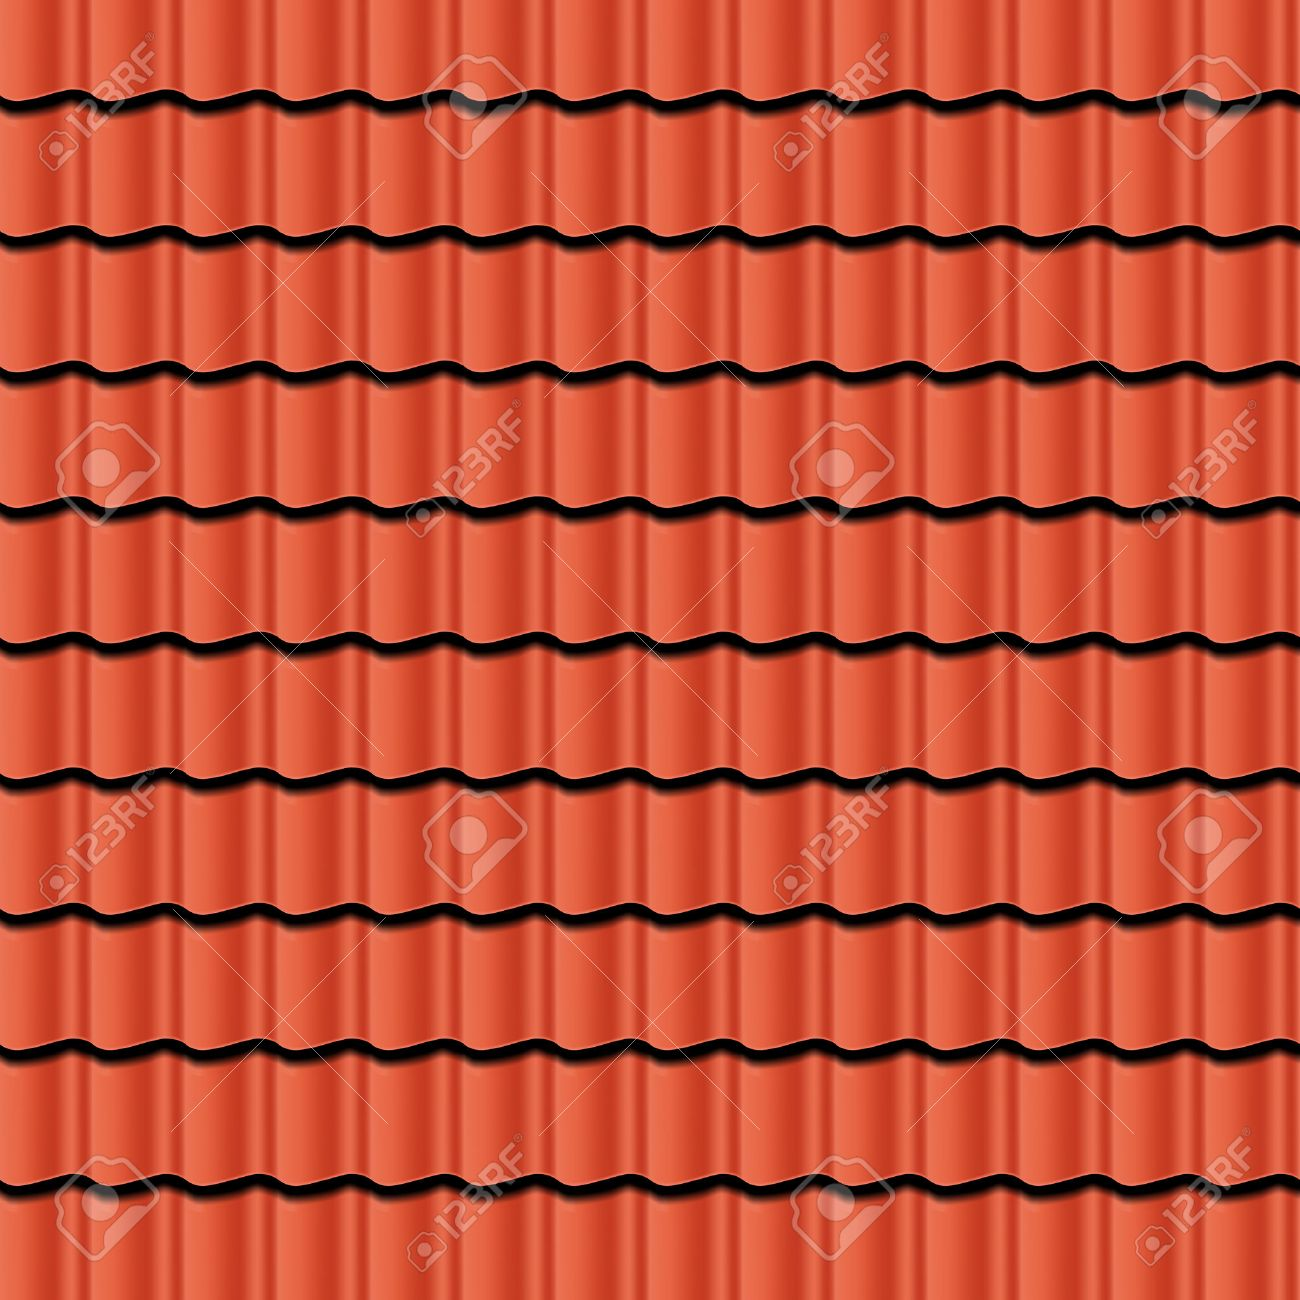 Red corrugated tile element of roof. Seamless pattern. Vector illustration - 36399819